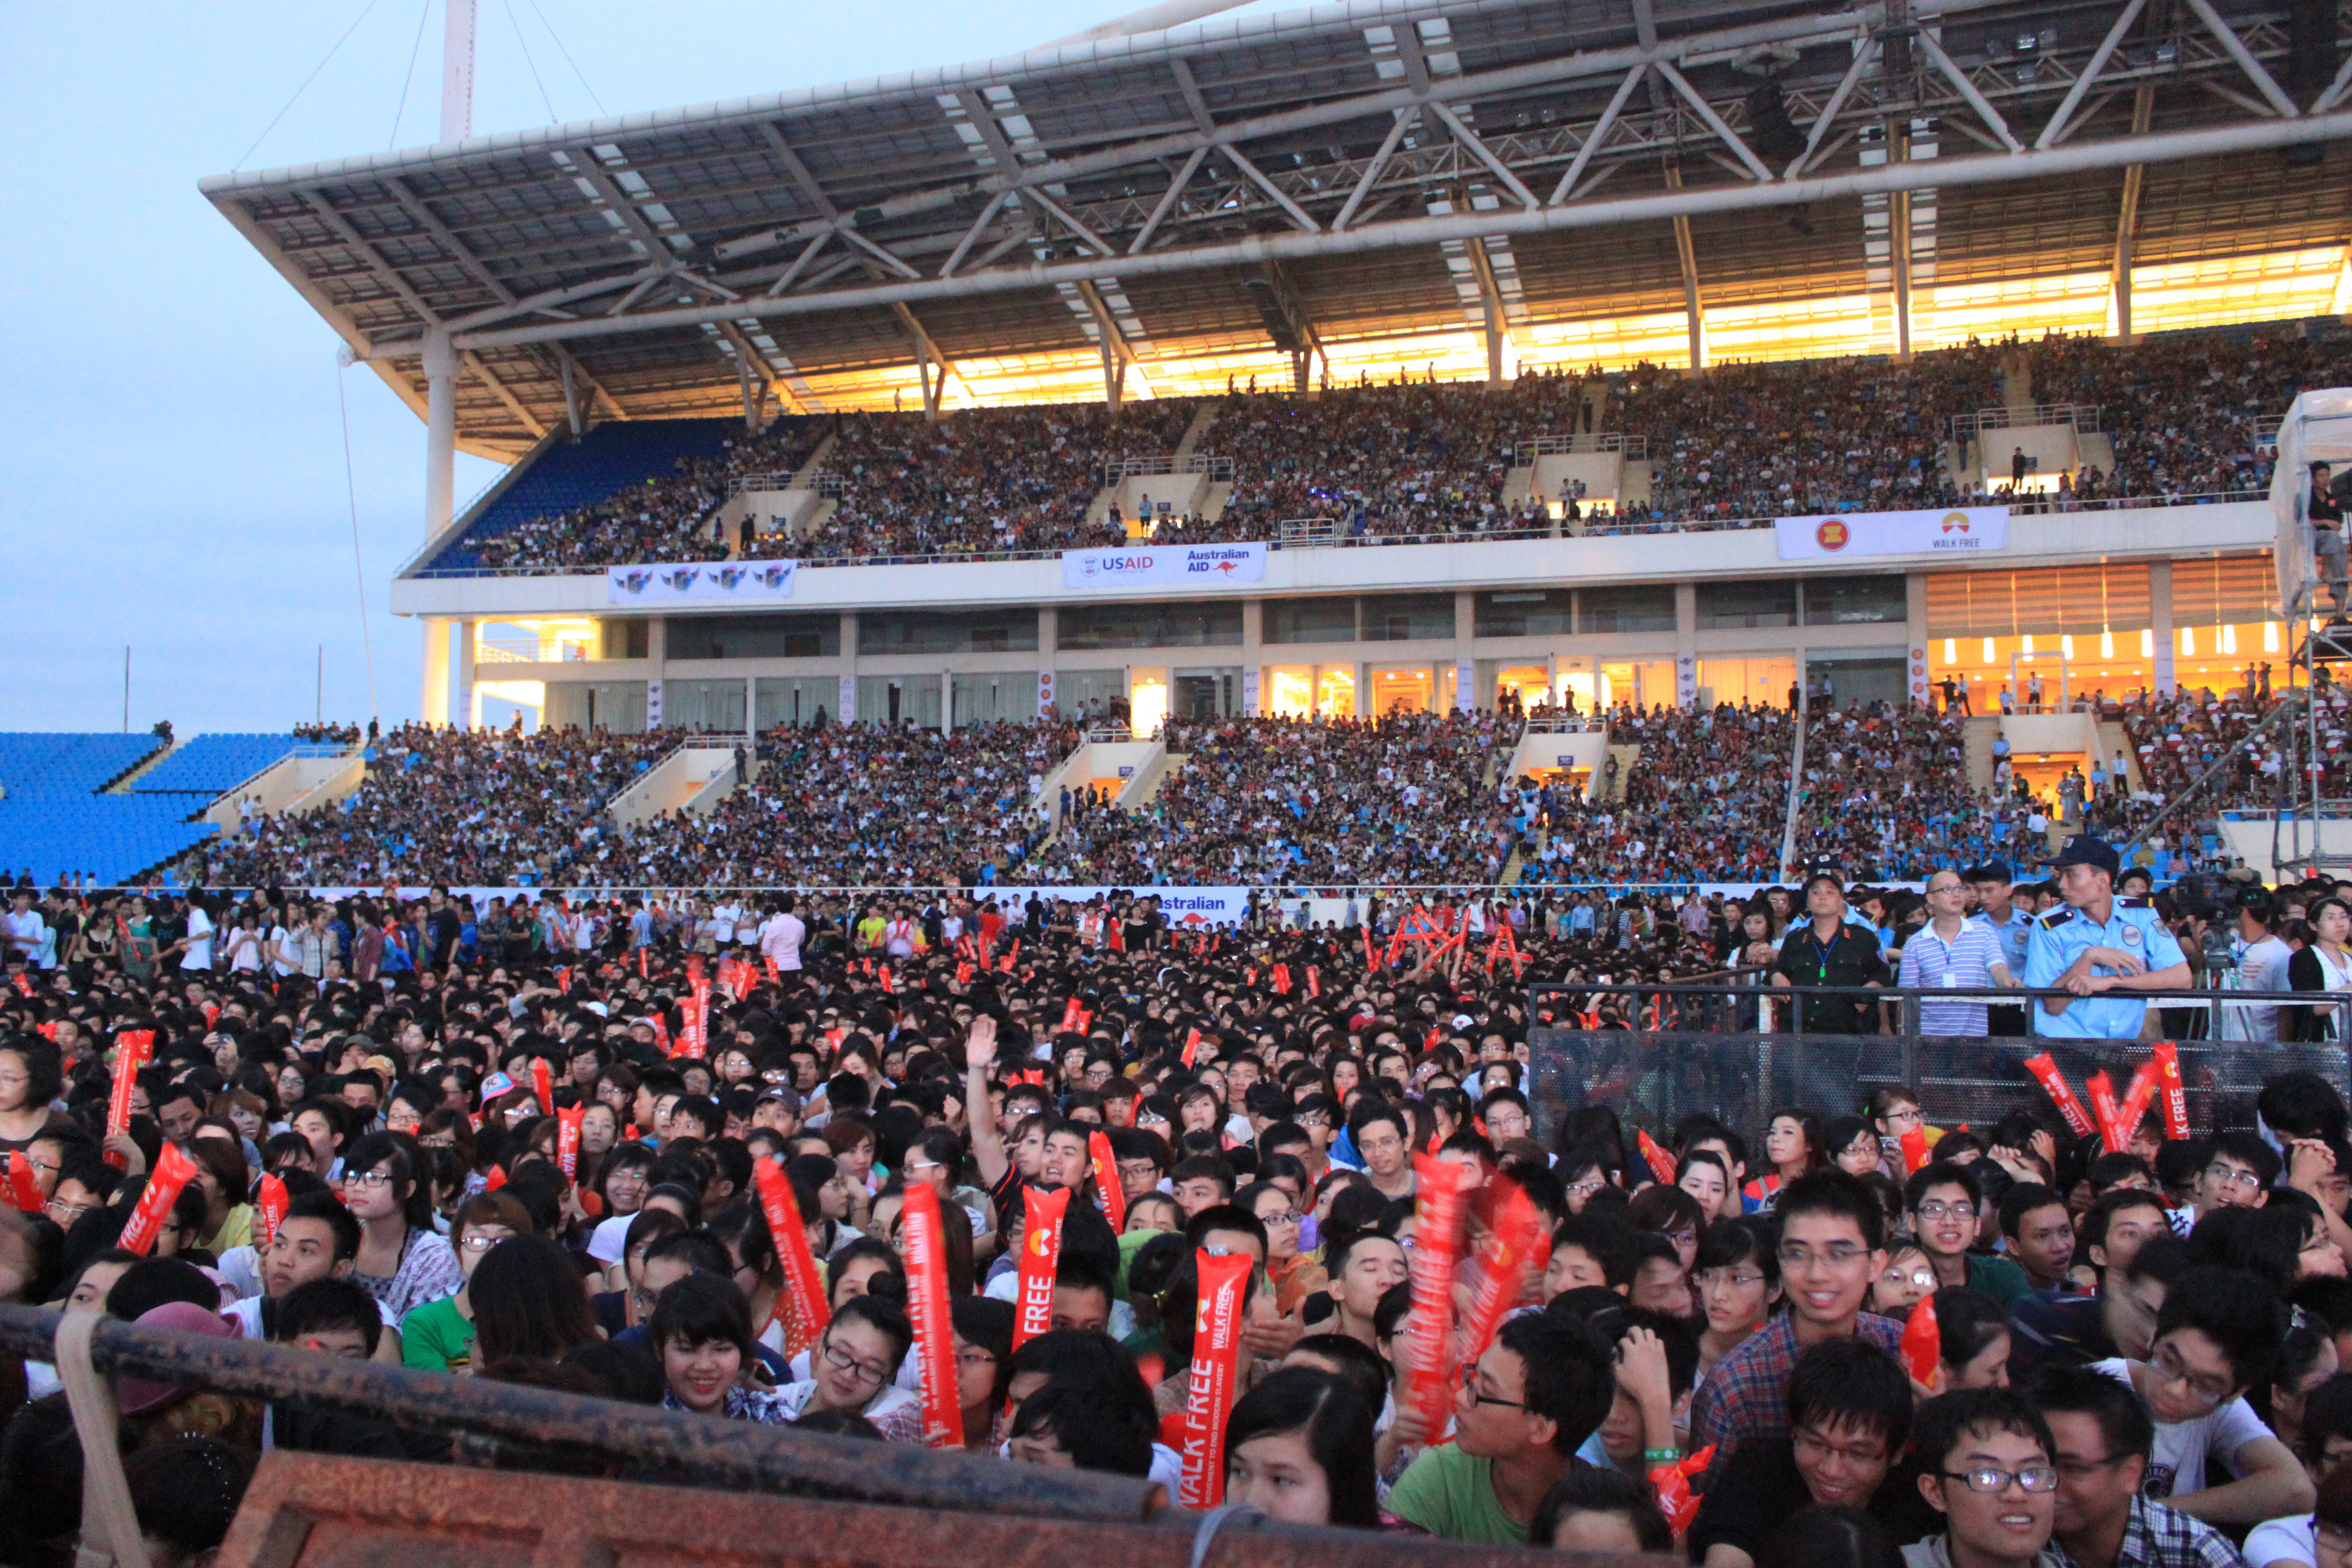 A massive crowd of fans are thrilled at the MTV EXIT concert in Hanoi against human trafficking.